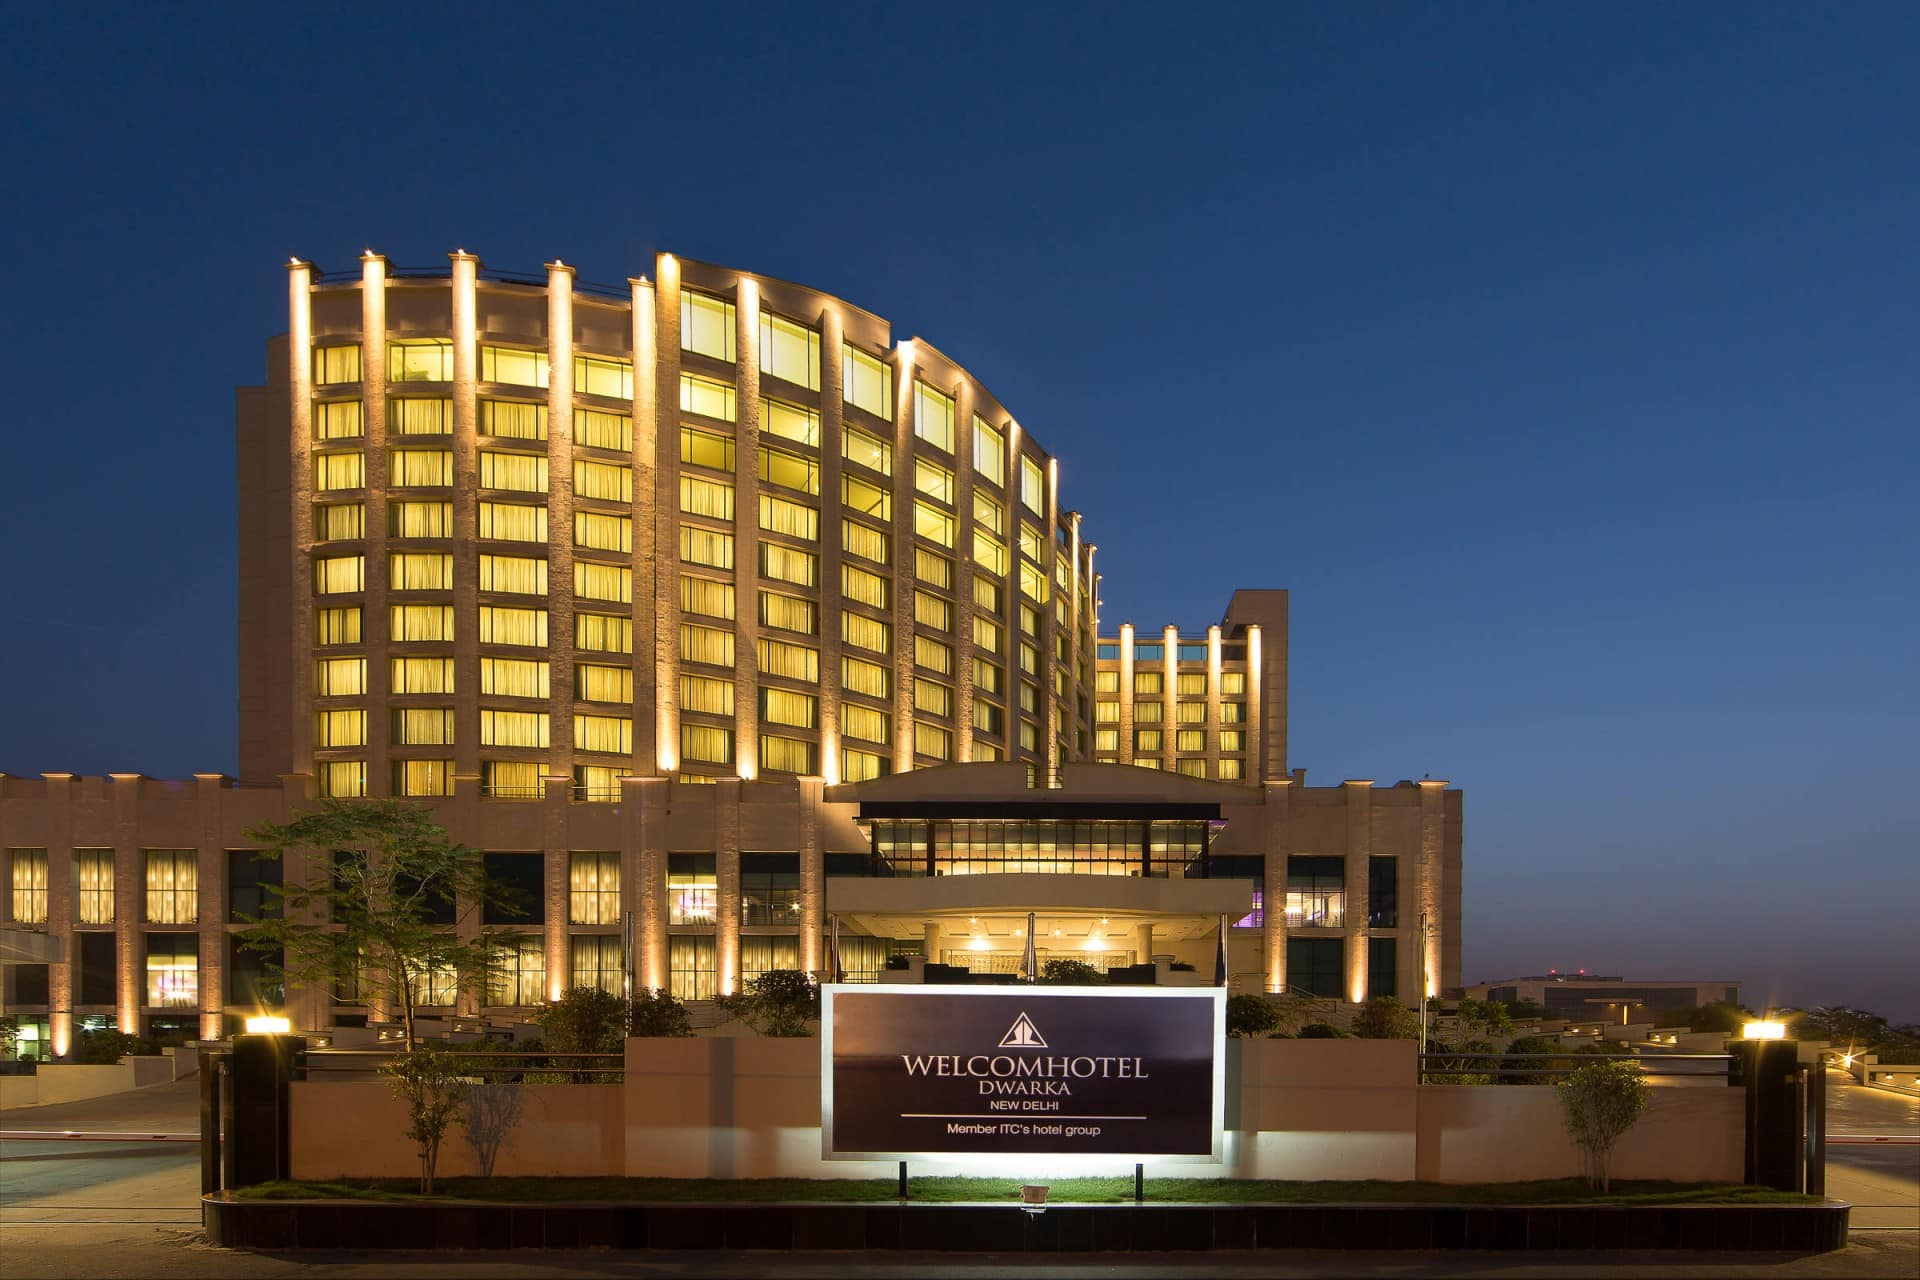 Best Architecture Photographer India | ITC Welcom Hotel Exterior Facade Photography New Delhi